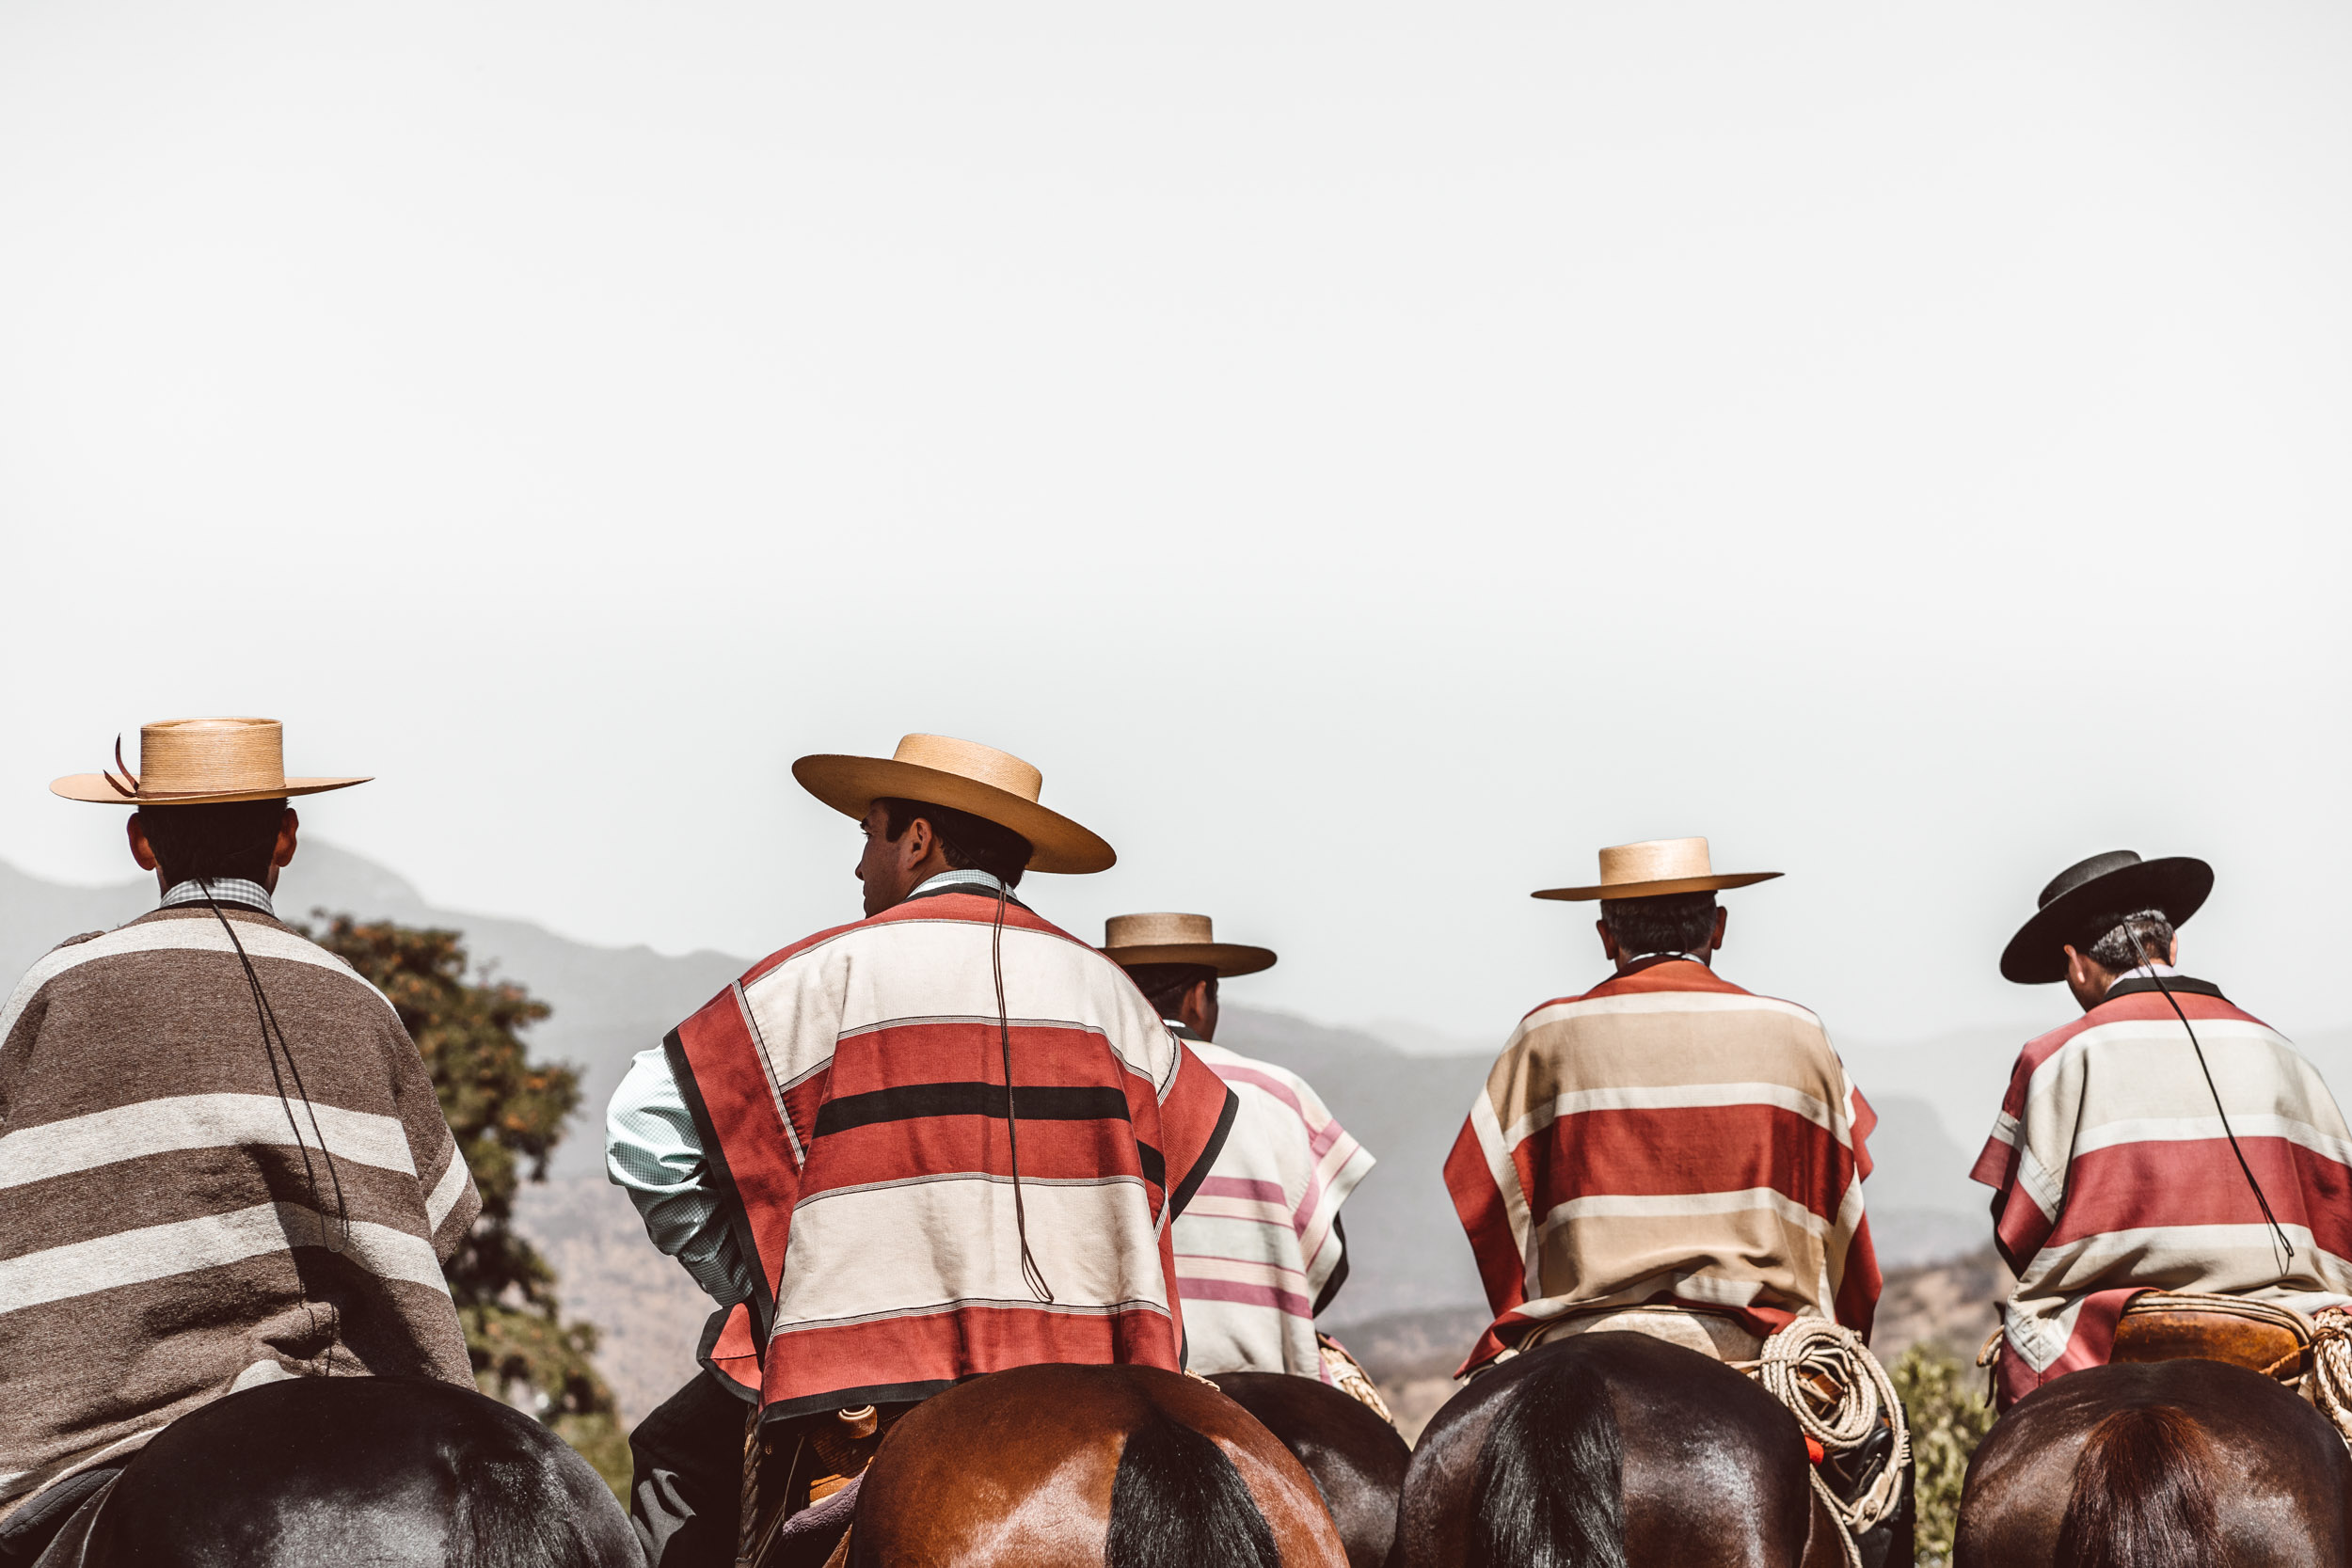 Chilean Huaso cowboys in their traditional attire seated on horseback